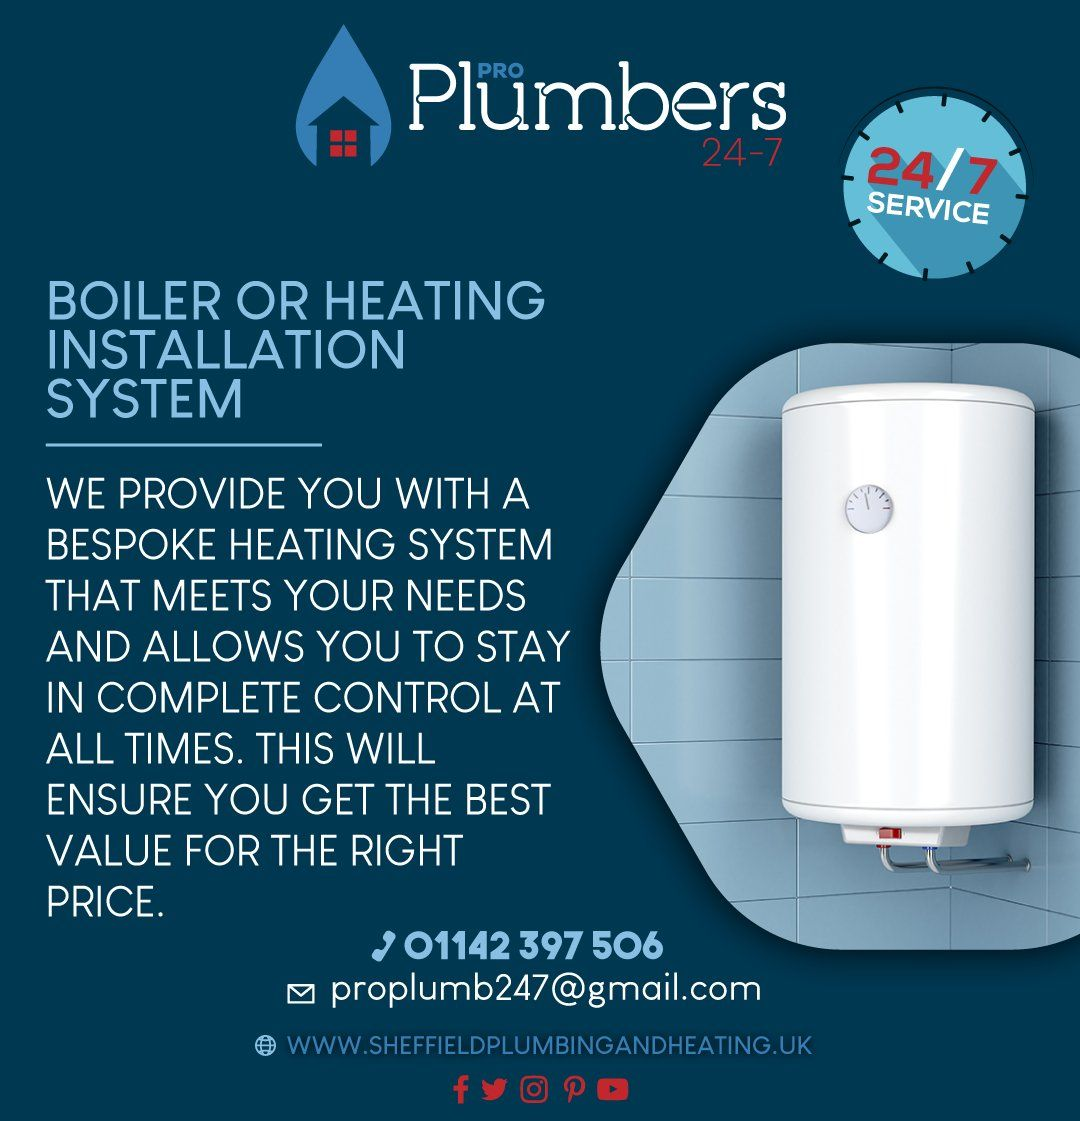 Pro Plumbers Will Clean Out Your Central Heating System Using